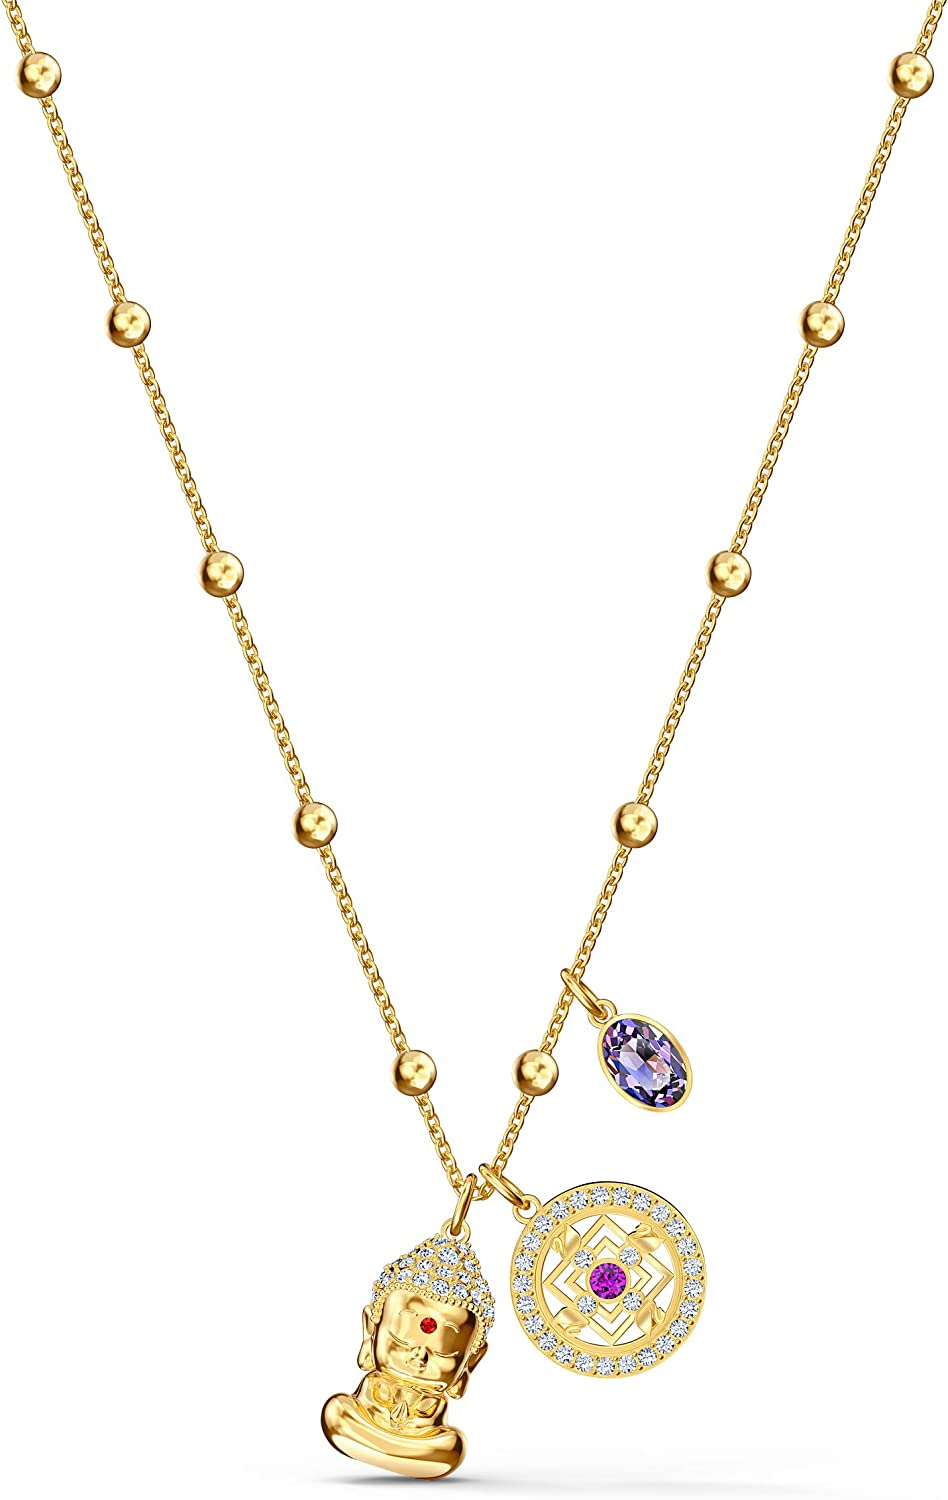 Abiertamente filósofo Encommium  Amazon.com: Swarovski Symbolic Collection Women's Pendant Necklace, with  Three Multi-Colored Crystal Charms and Gold Tone Plated Chain, an Amazon  Exclusive: Jewelry